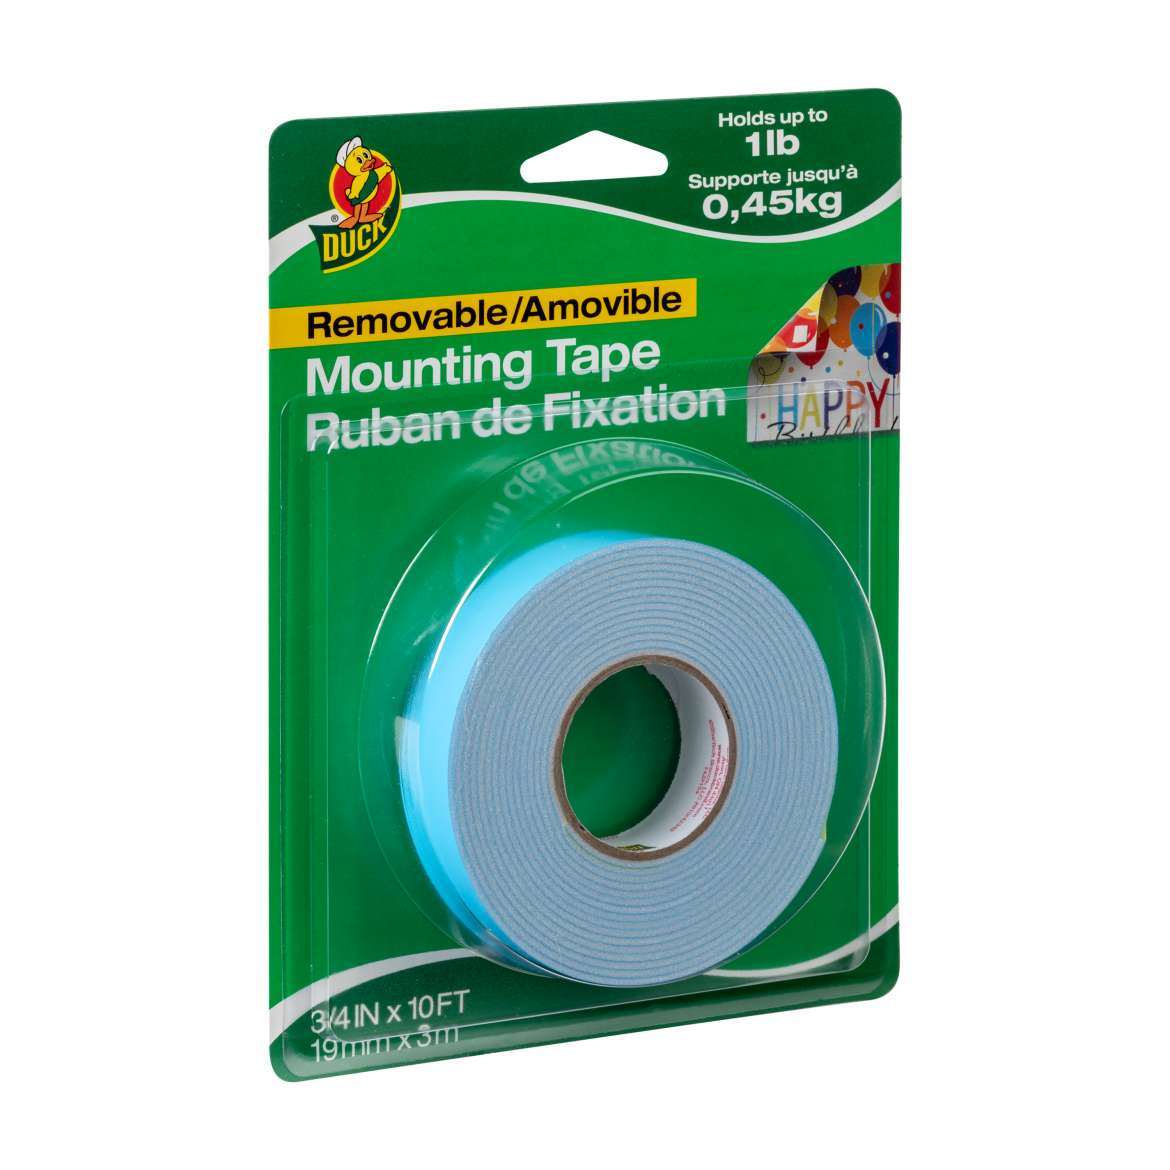 Removable Mounting Tape